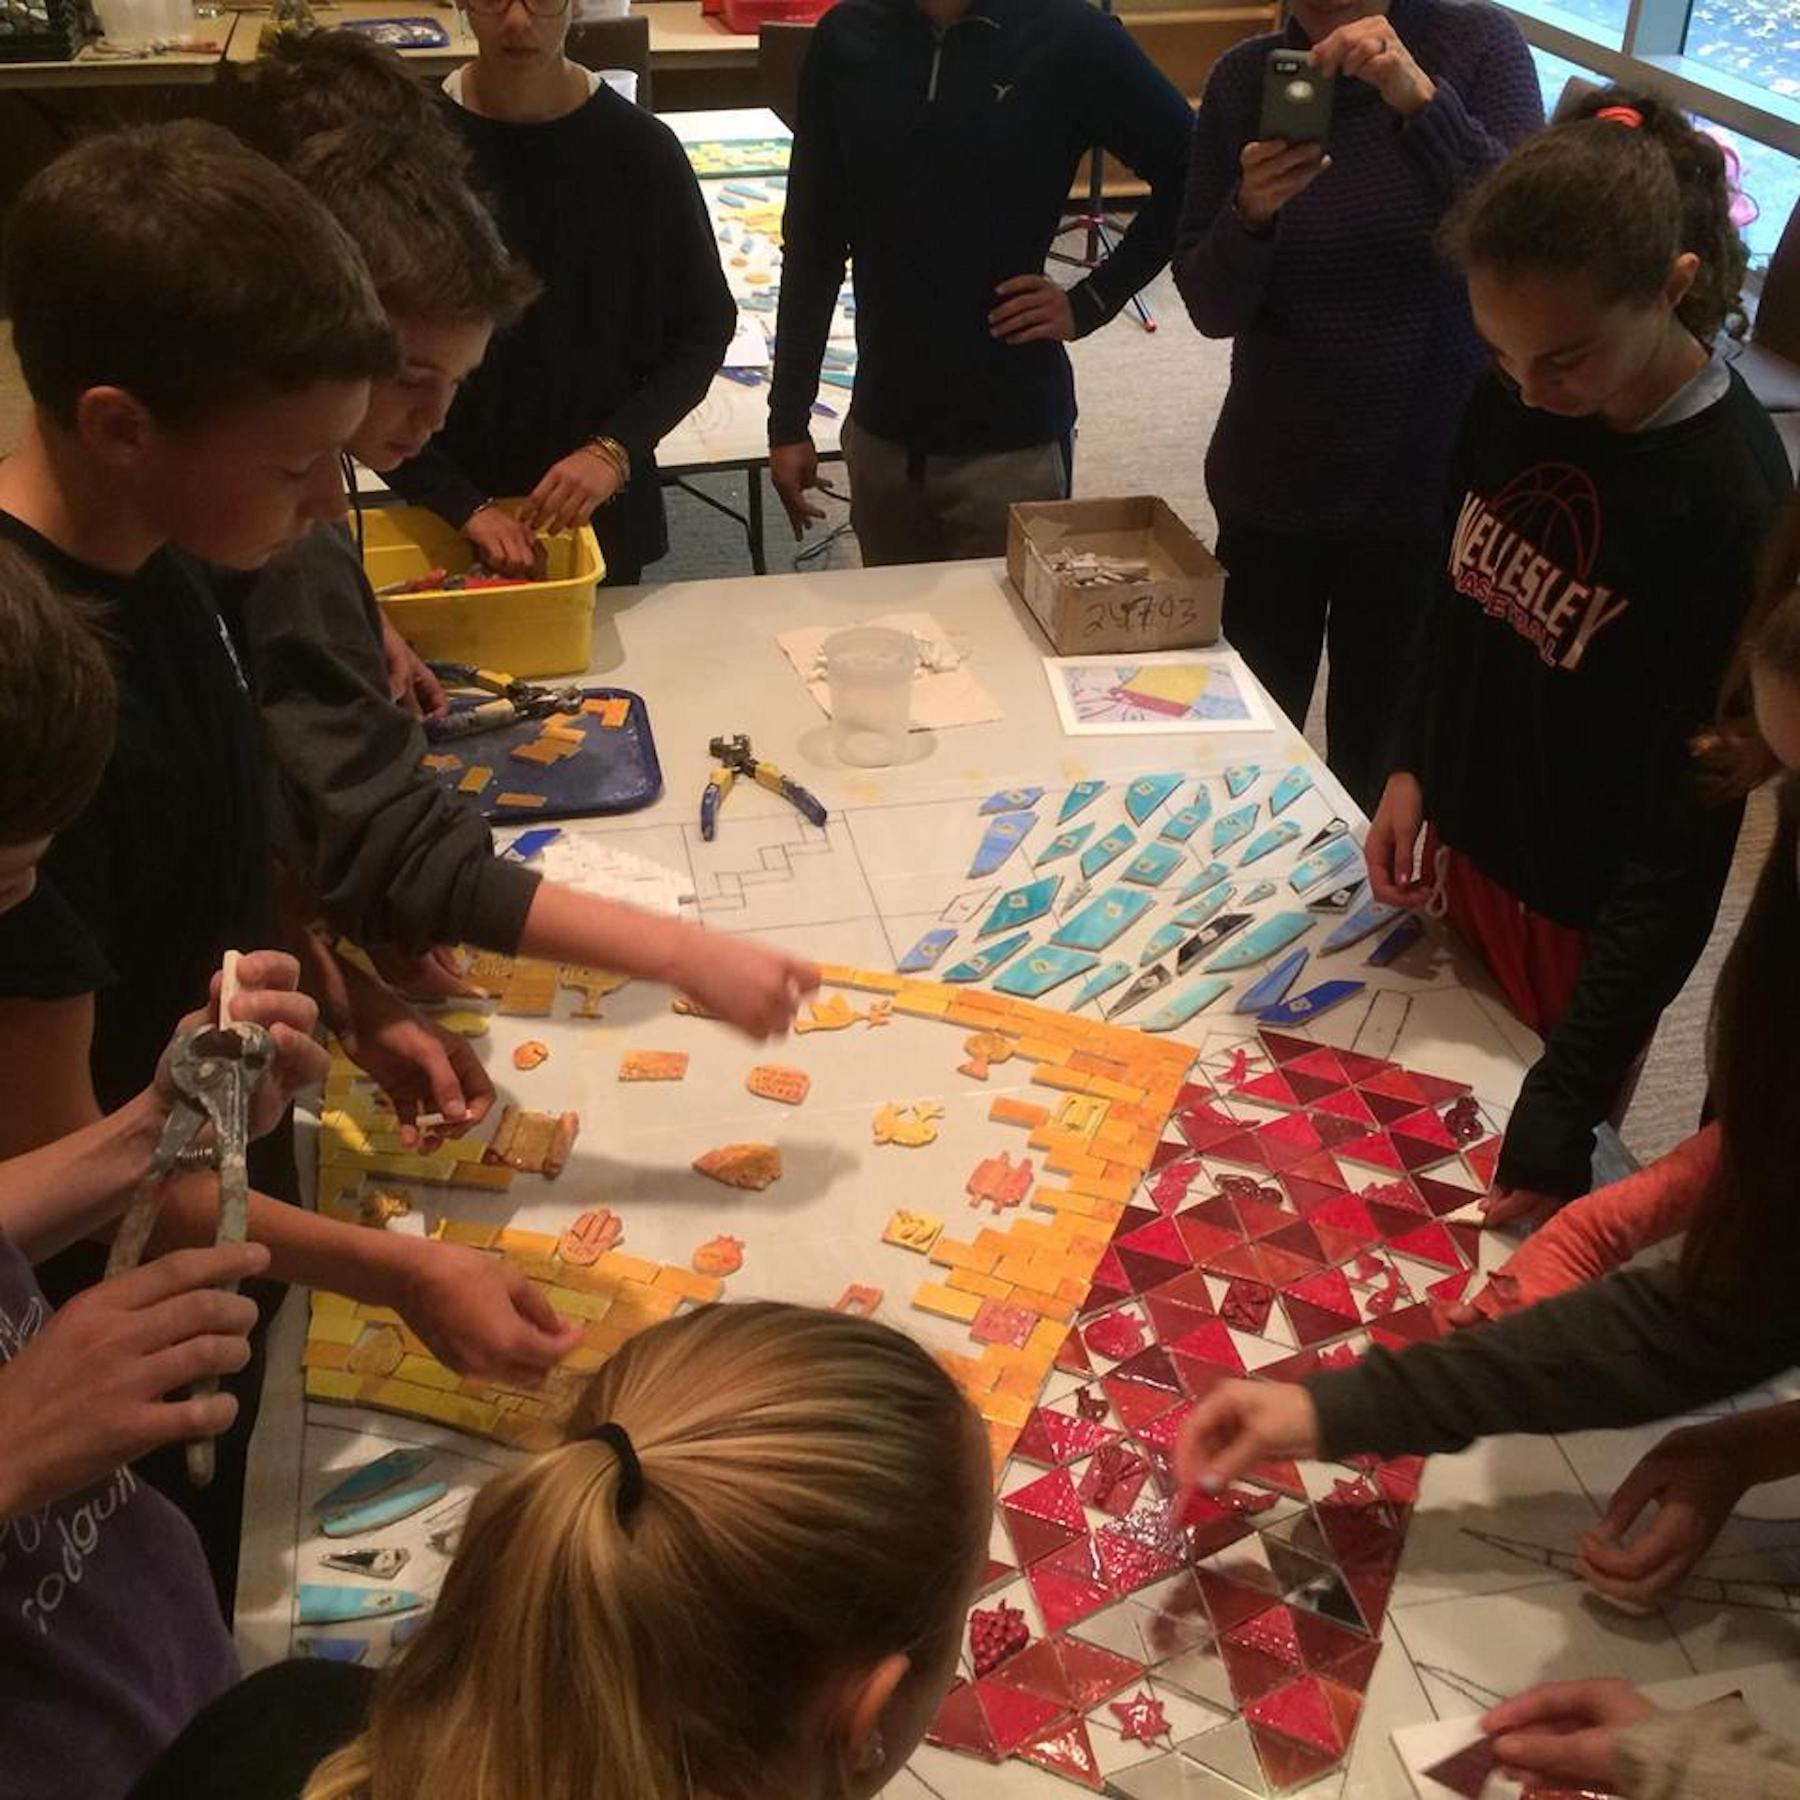 7. Students making mosaic